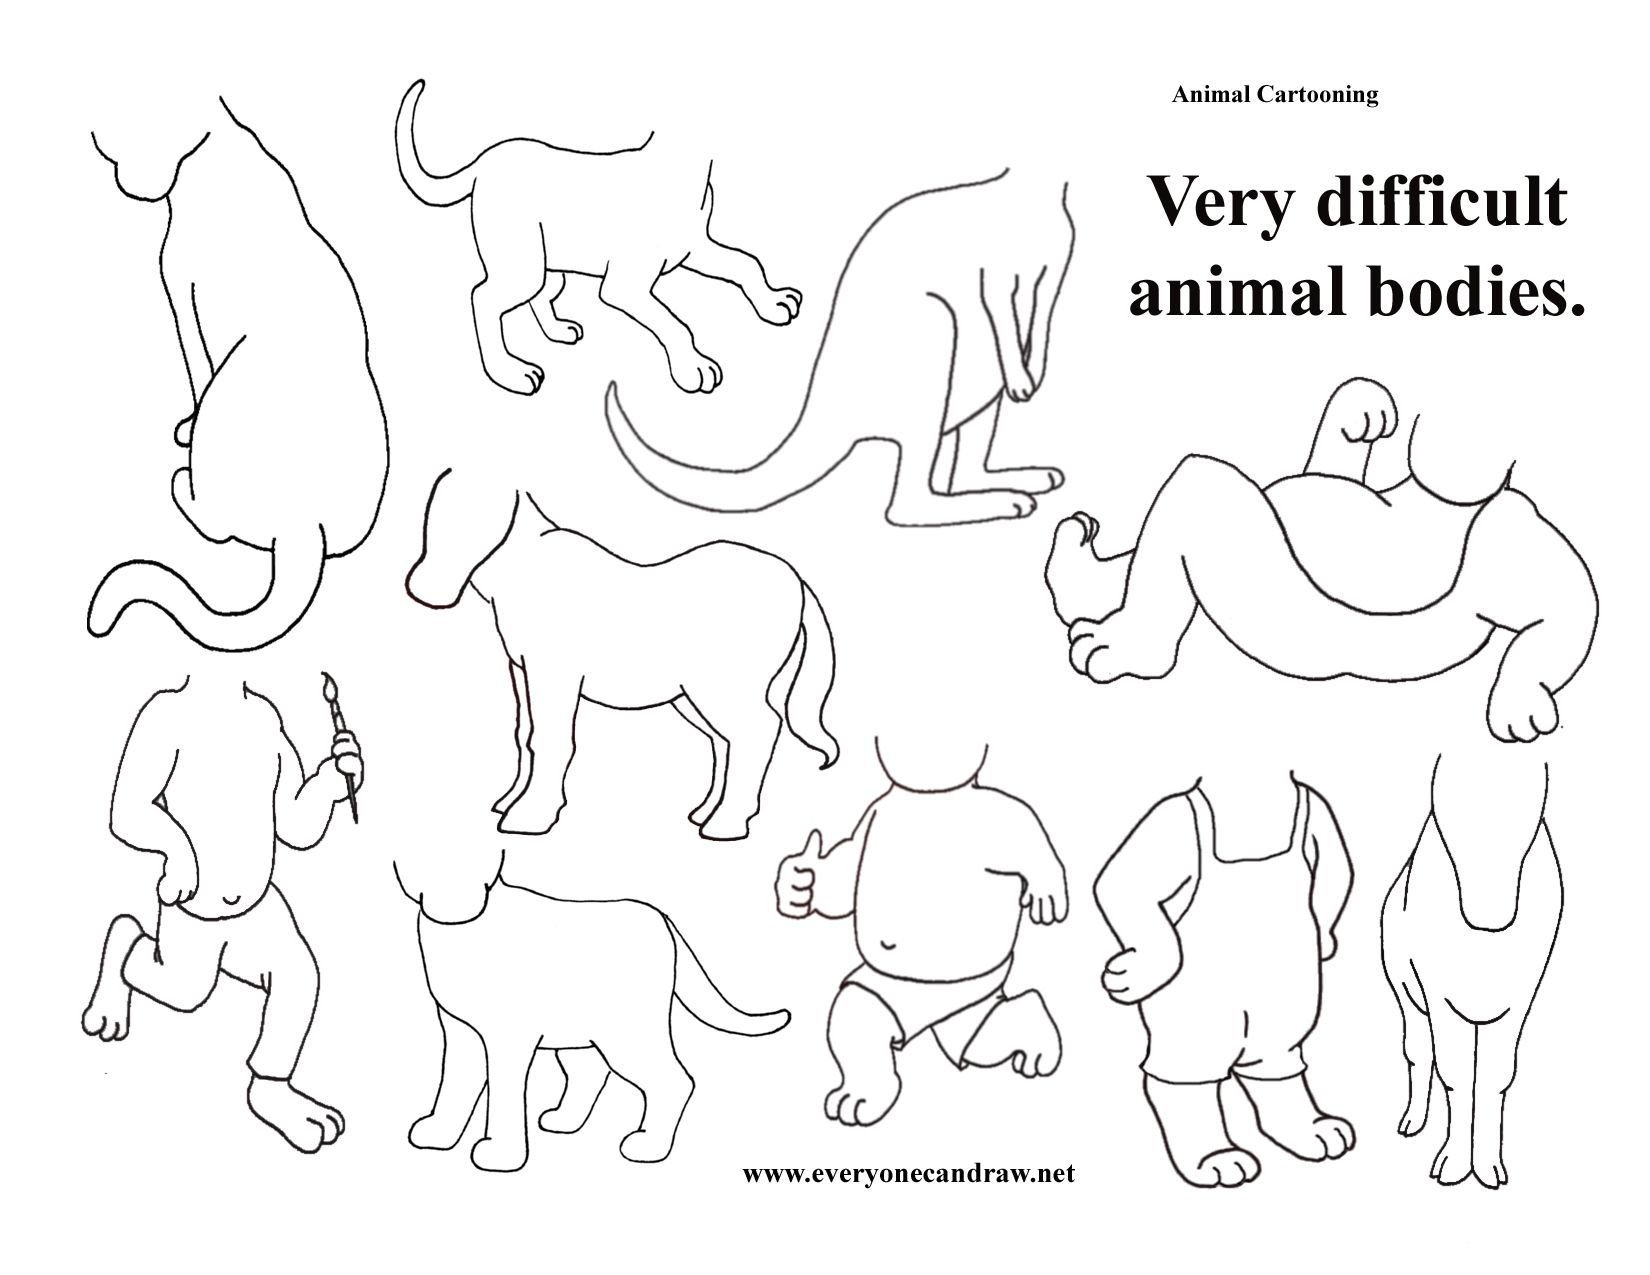 Animal Bodies Very Difficult Drawing For Kids Cartoon Animals Draw On Photos [ 1275 x 1650 Pixel ]